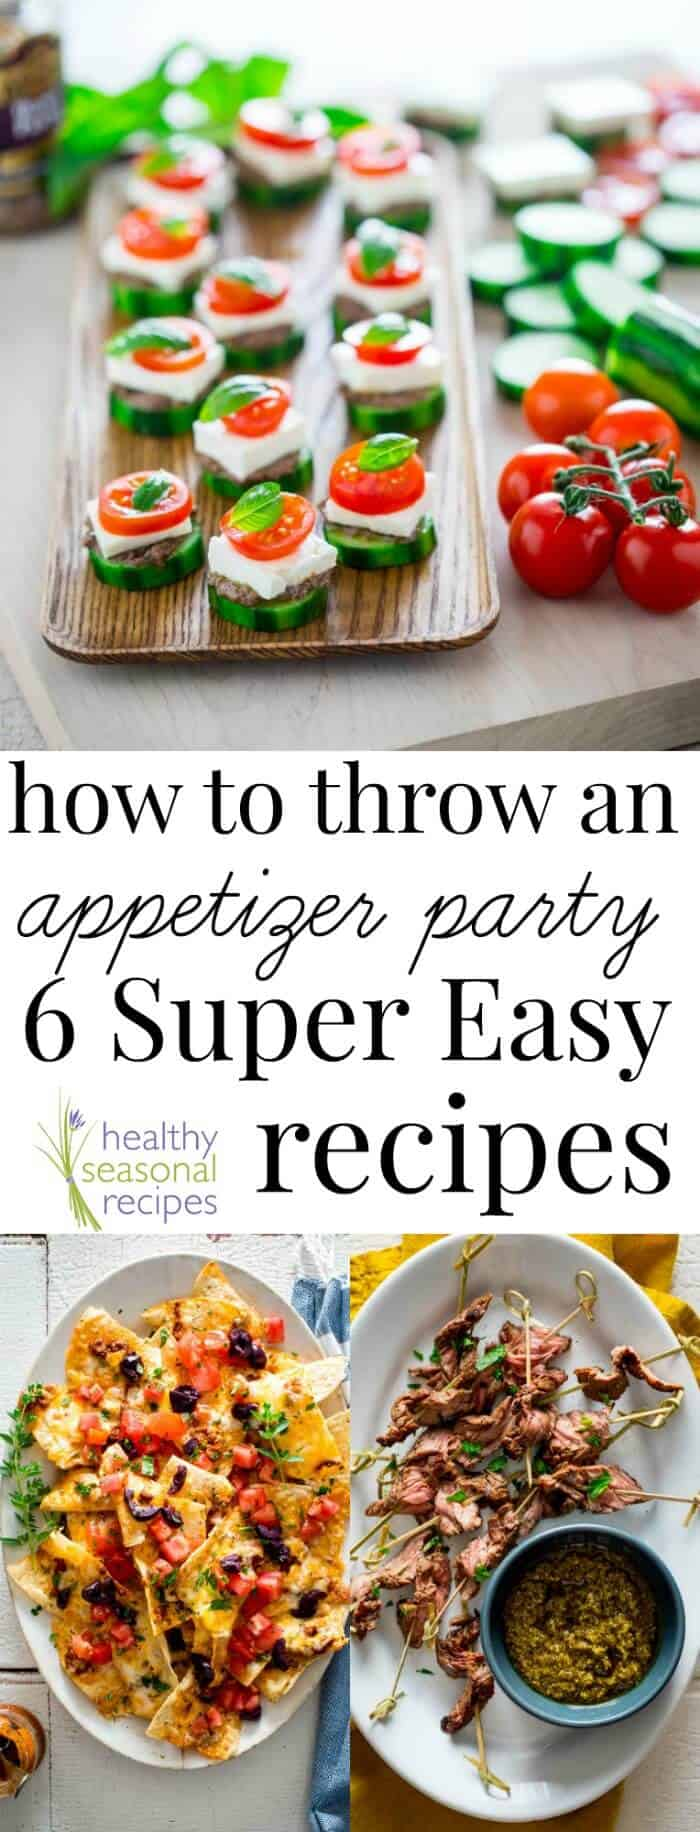 How to Throw an appetizer party with 6 easy recipes. Just throw these recipes together with store-bought pesto and a few simple ingredients! @healthyseasonal #appetizer #tapas #party